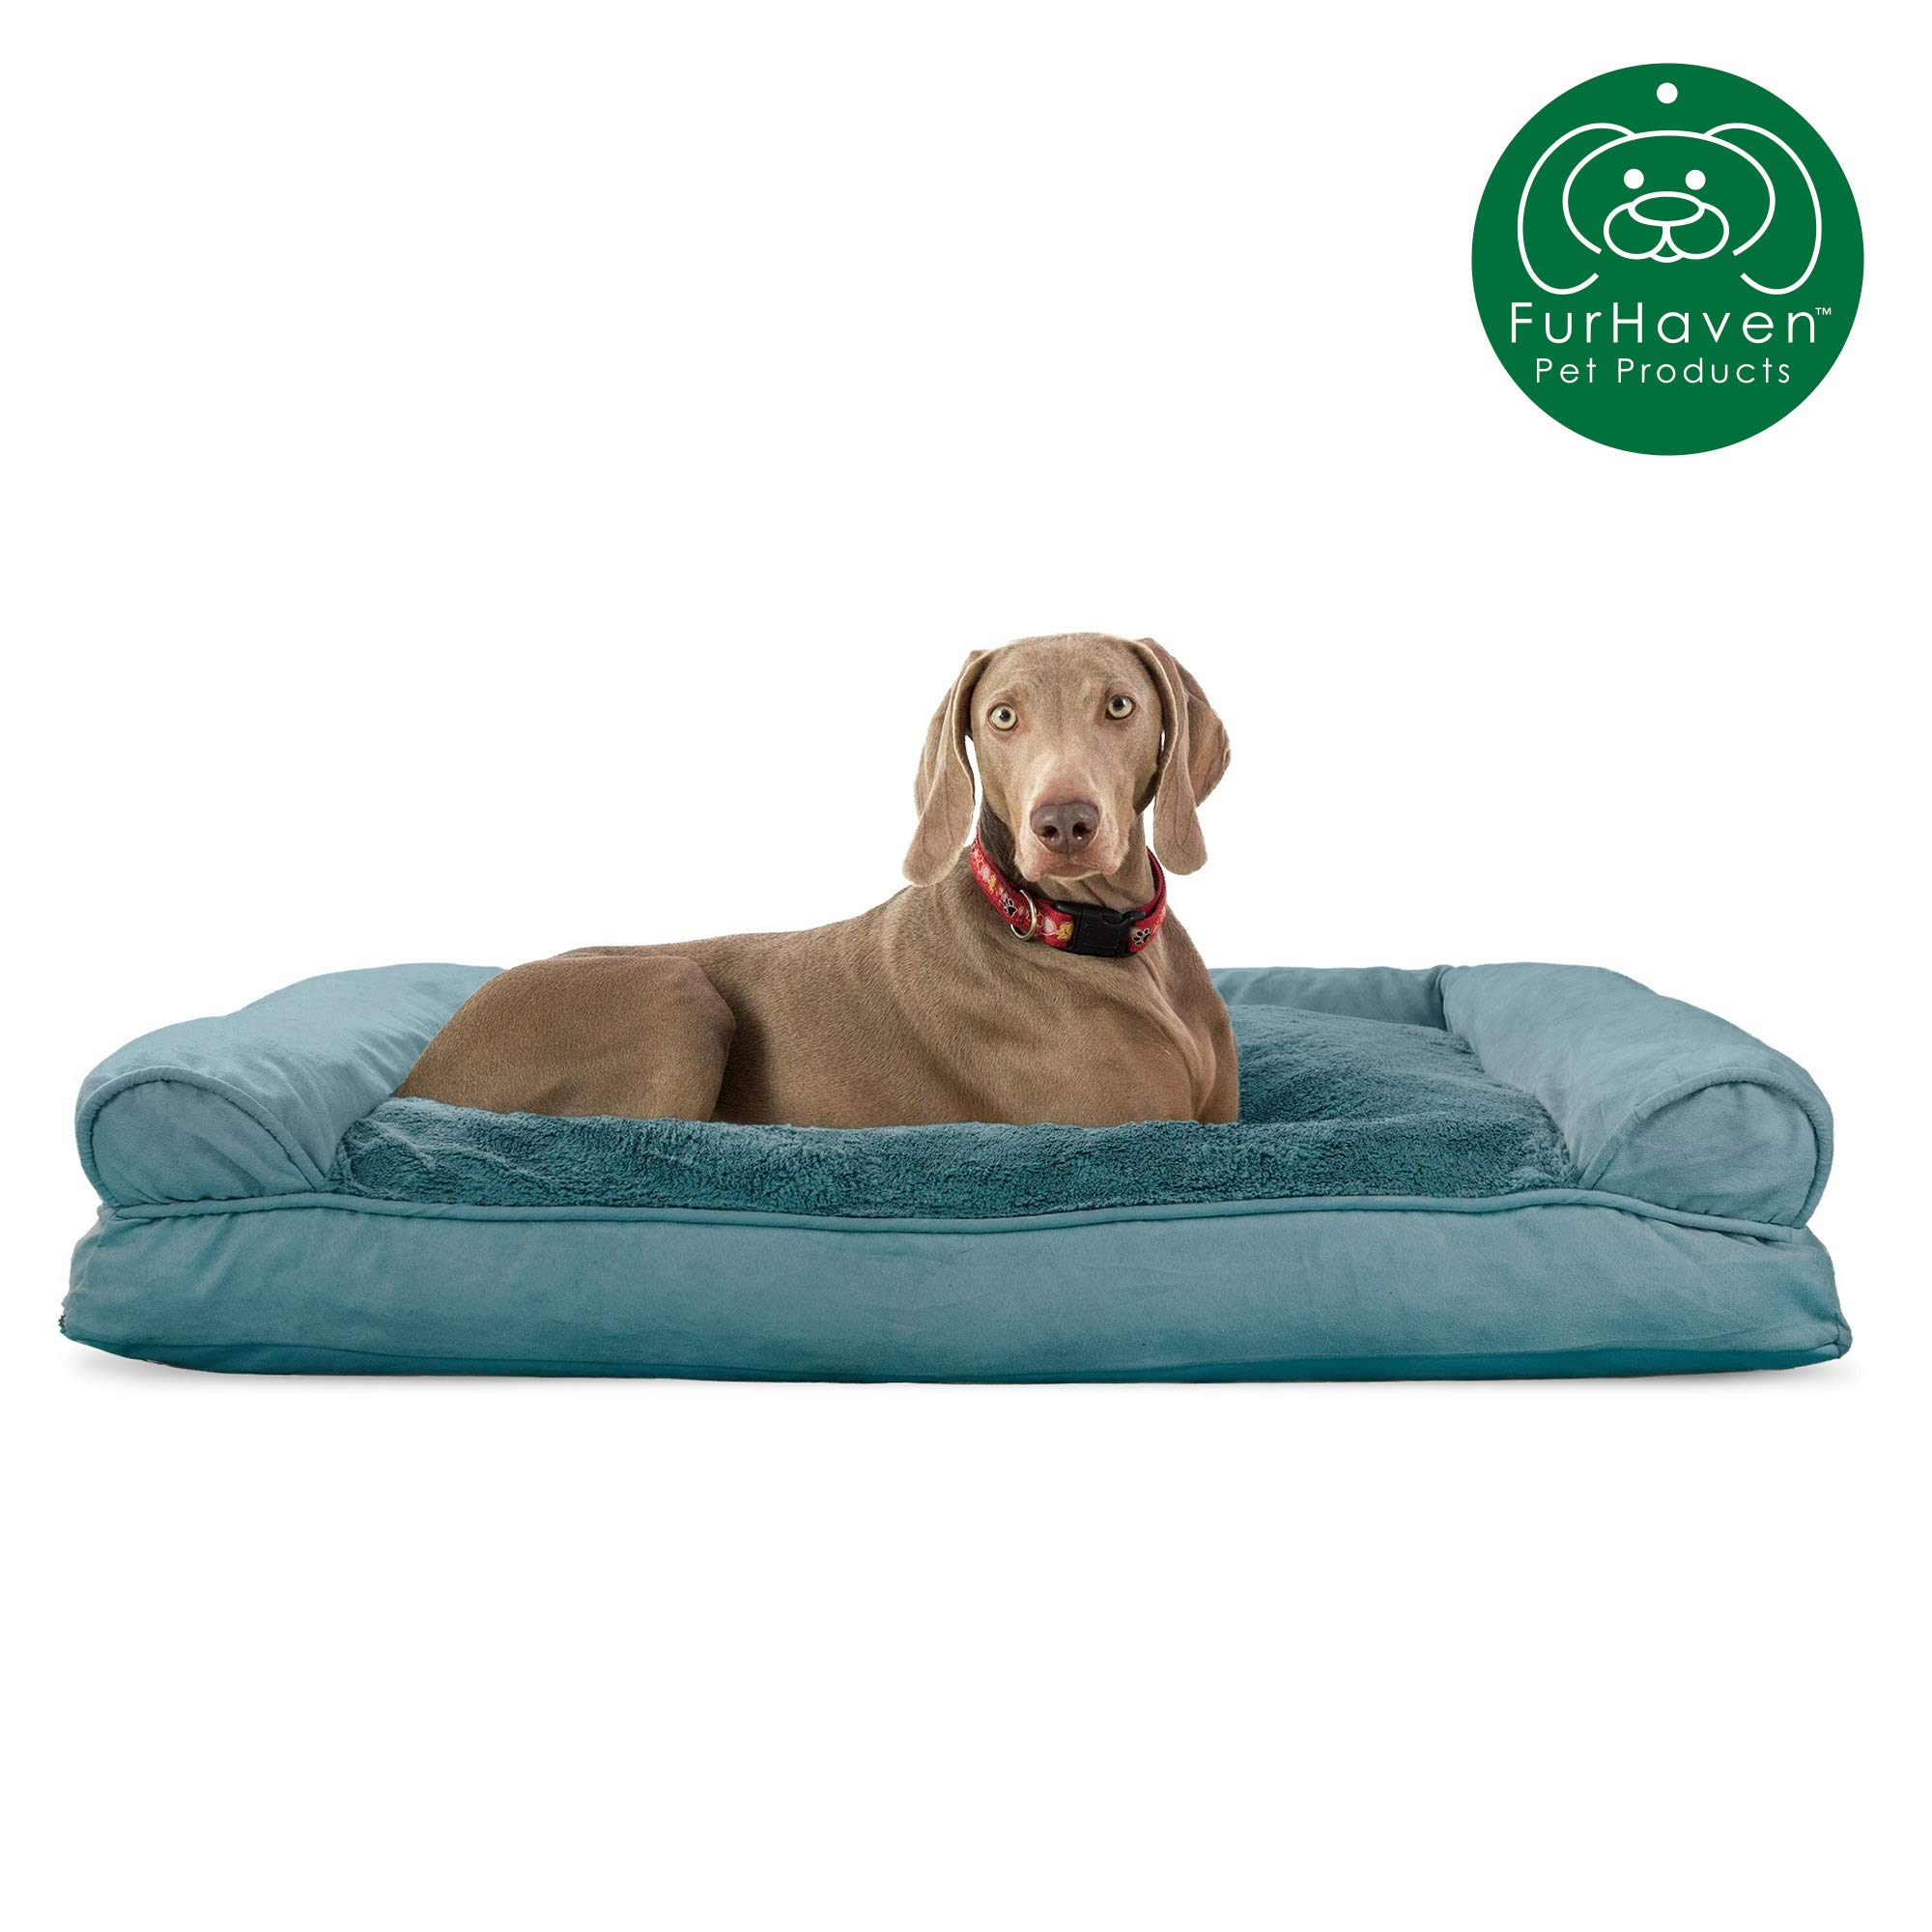 Furhaven Pet Dog Bed | Ultra Plush Faux Fur & Suede Pillow Cushion Traditional Sofa-Style Living Room Couch Pet Bed w/ Removable Cover for Dogs & Cats, Deep Pool, Jumbo by Furhaven